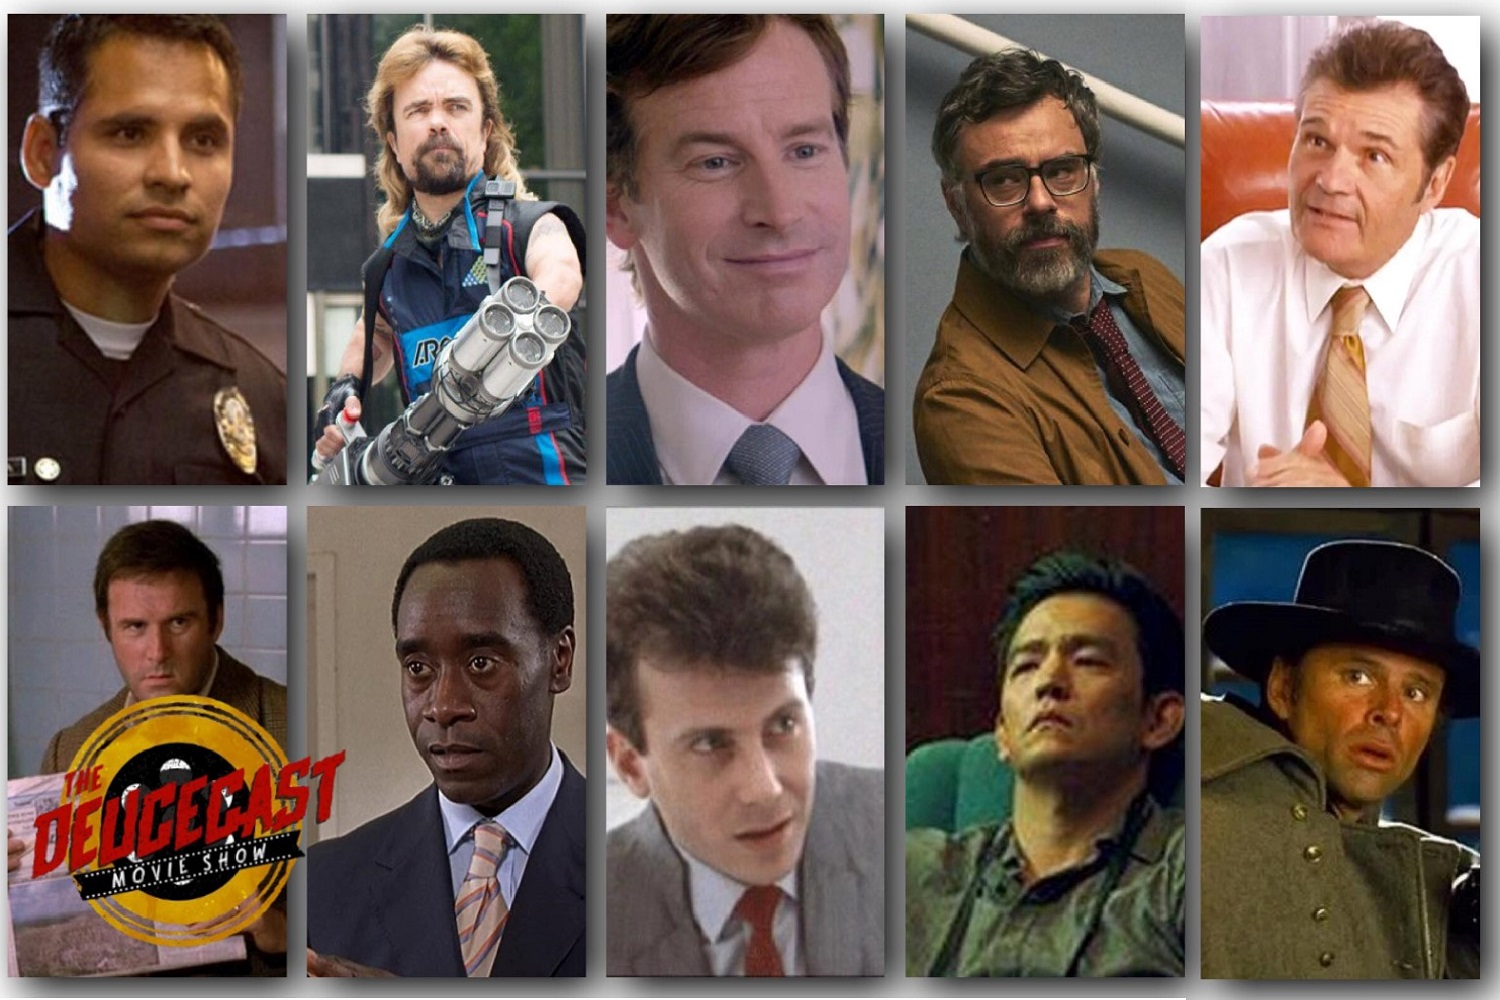 The Deucecast Movie Show #477: Actors Who Make Movies Better